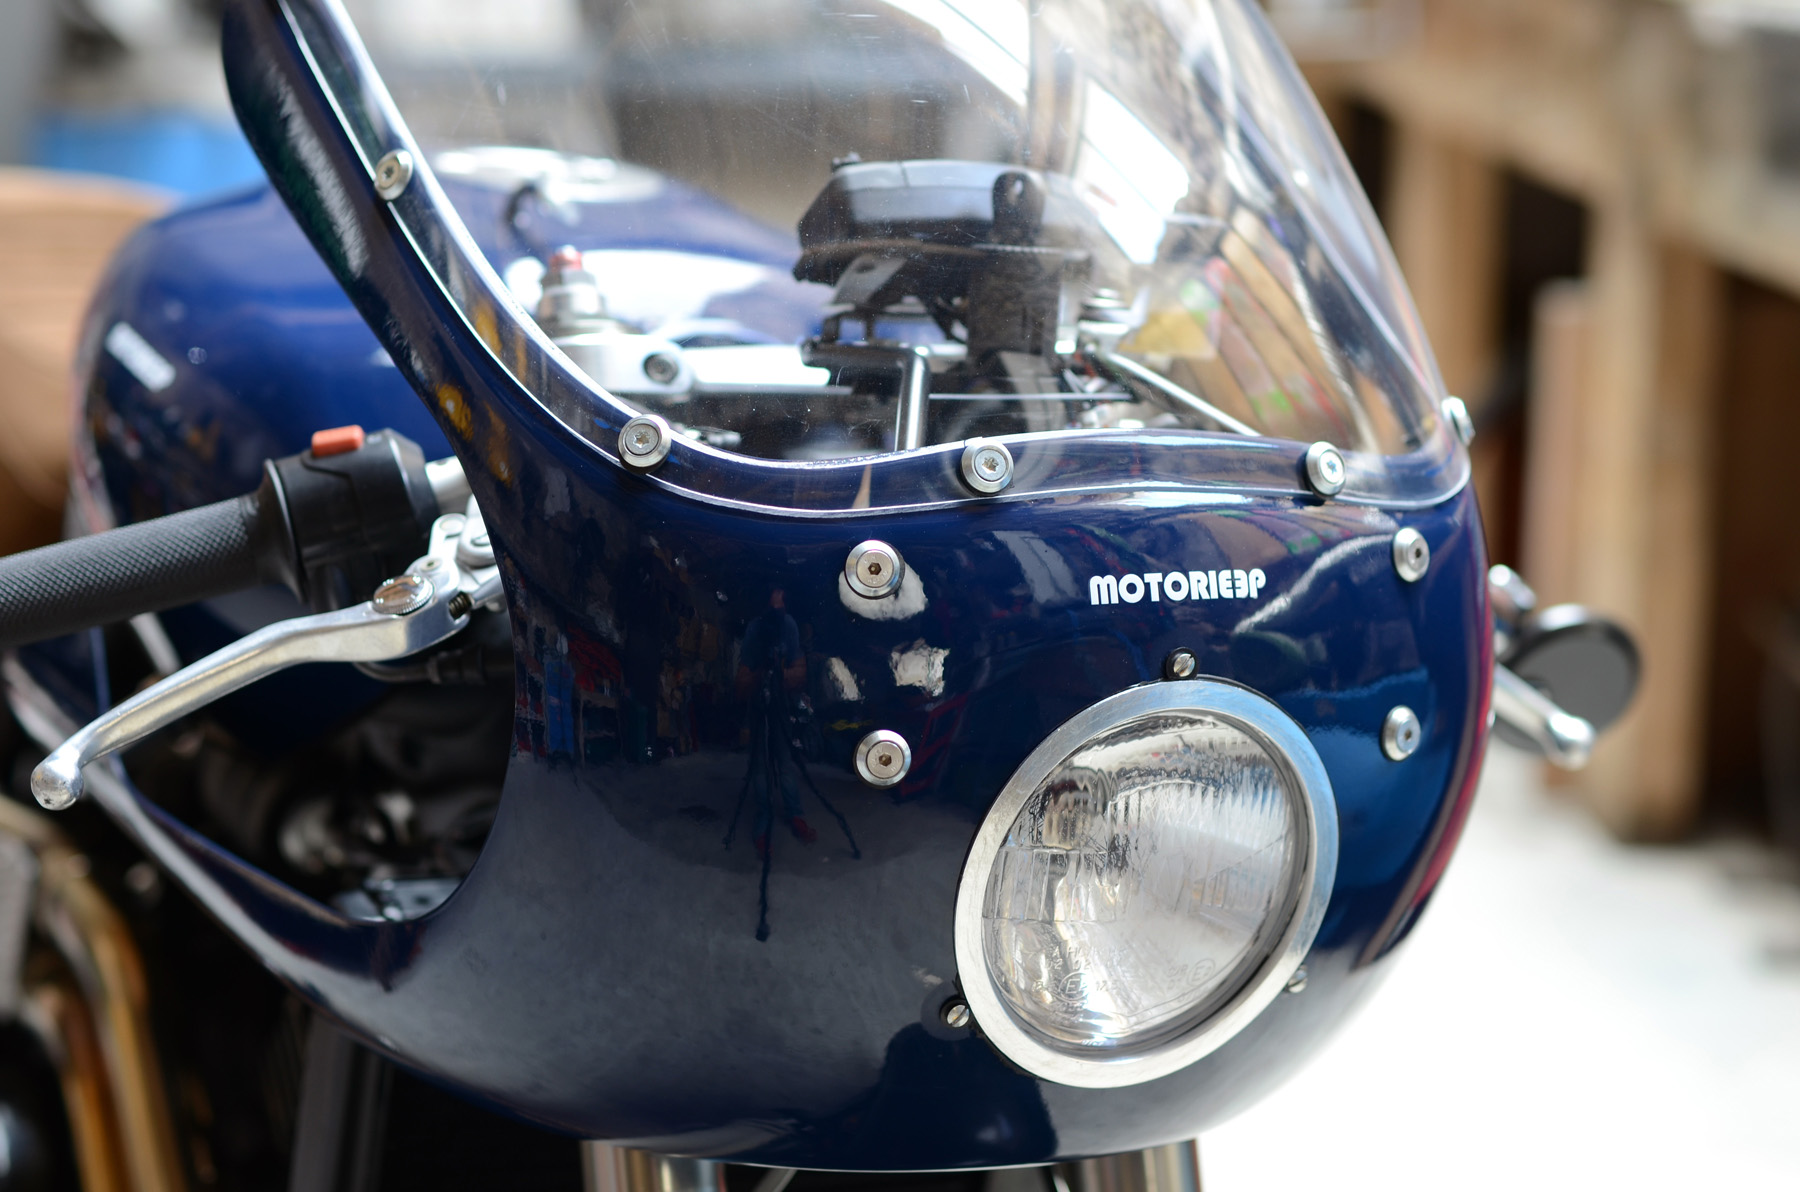 motorieep voxan cafe racer1006